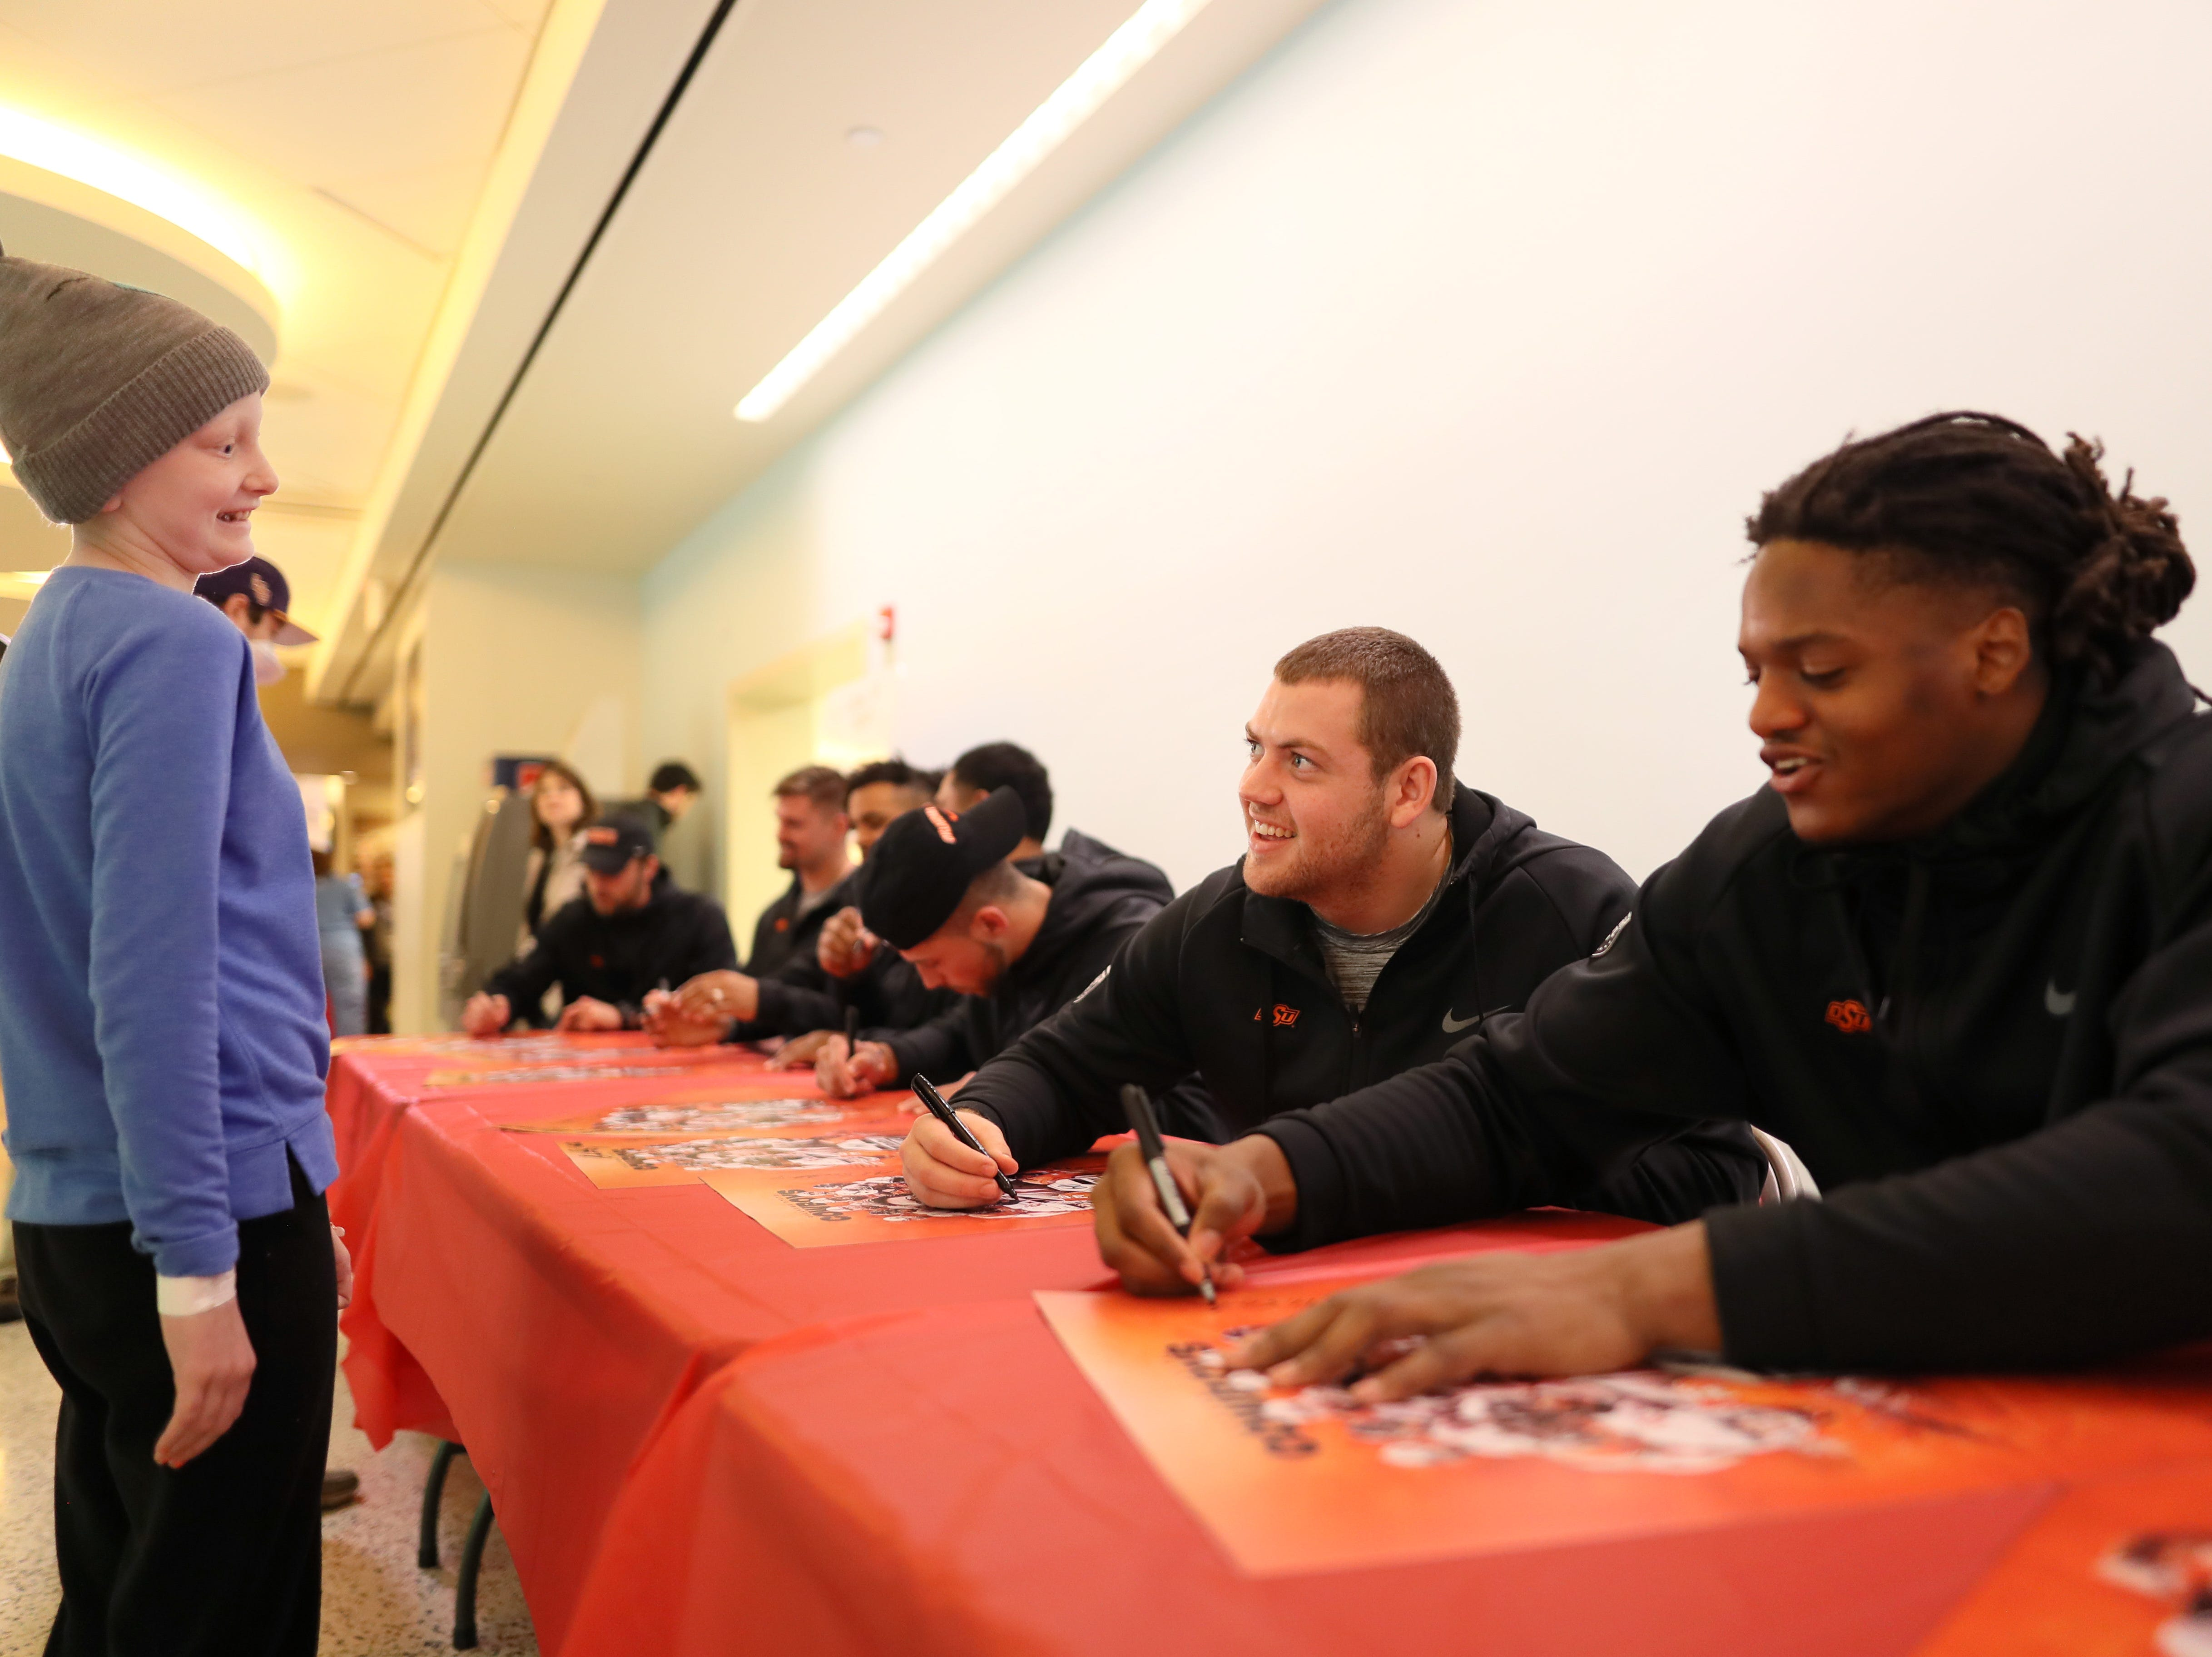 The Oklahoma State Cowboys football team autographs posters for St. Jude patients Friday as the players made a visit to the hospital in part of their tour of Memphis, before playing in Monday's Liberty Bowl.